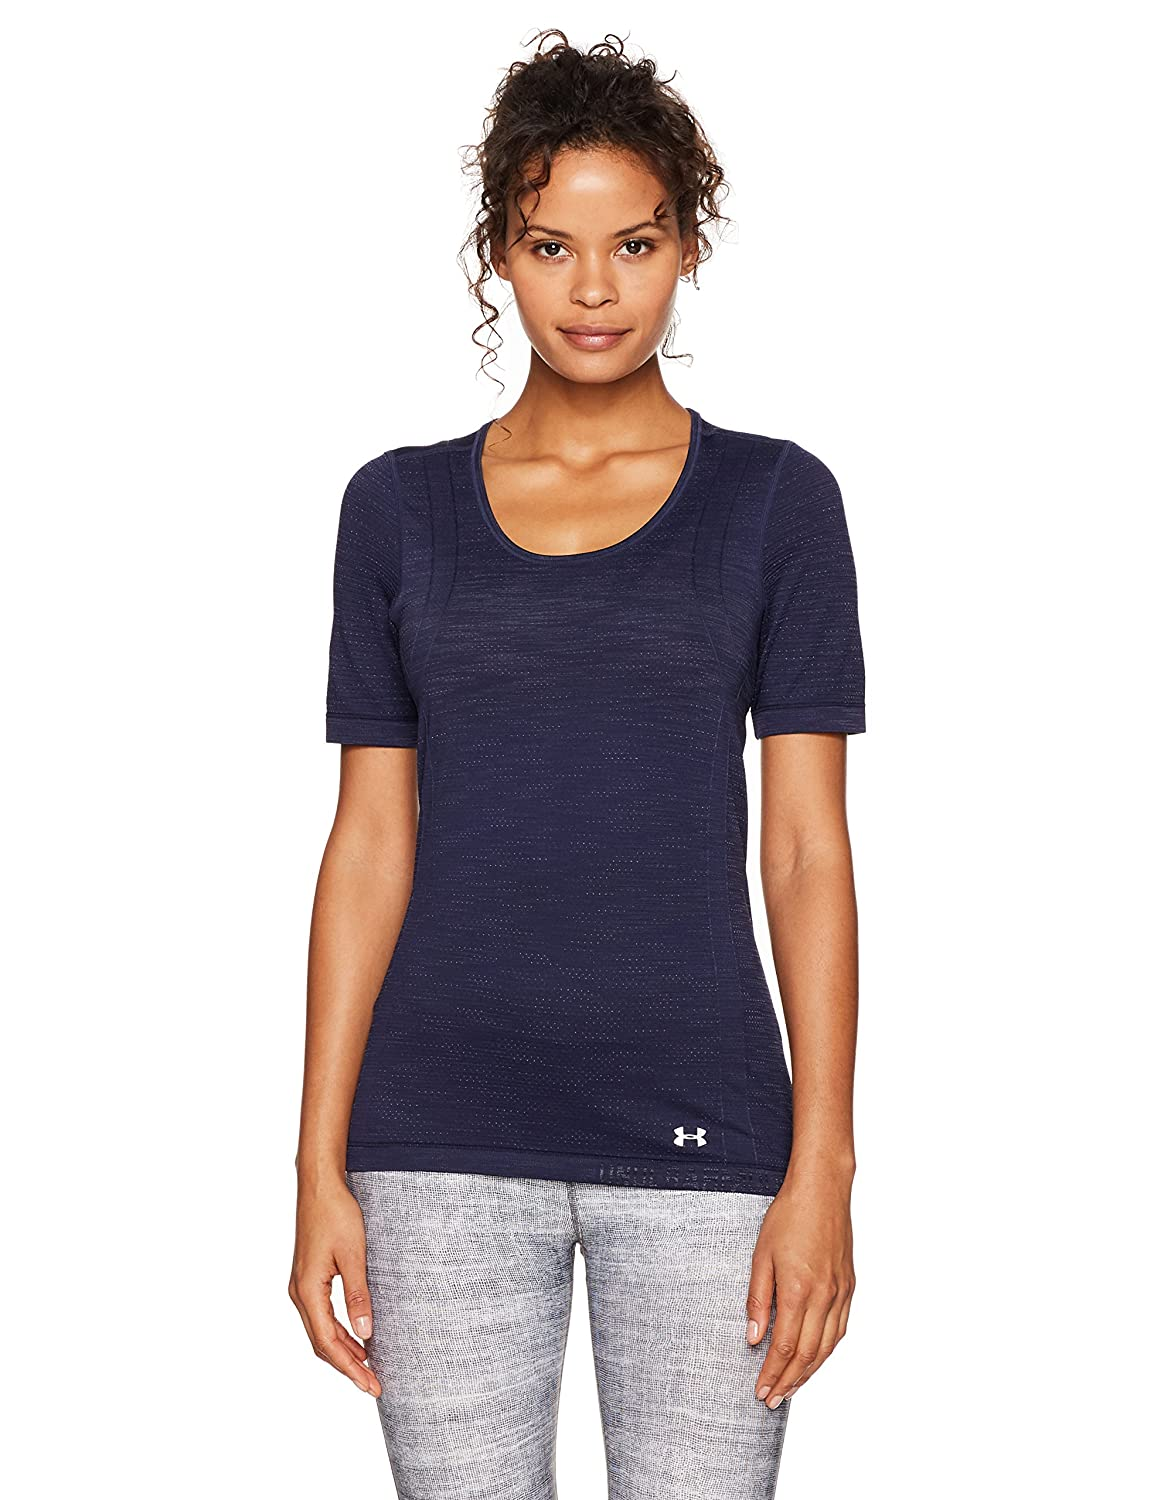 Under Armour Women 's Armour threadborne Seamless Space Dye Short Sleeve B075847VSH Large|Midnight Navy (410)/Silver Midnight Navy (410)/Silver Large